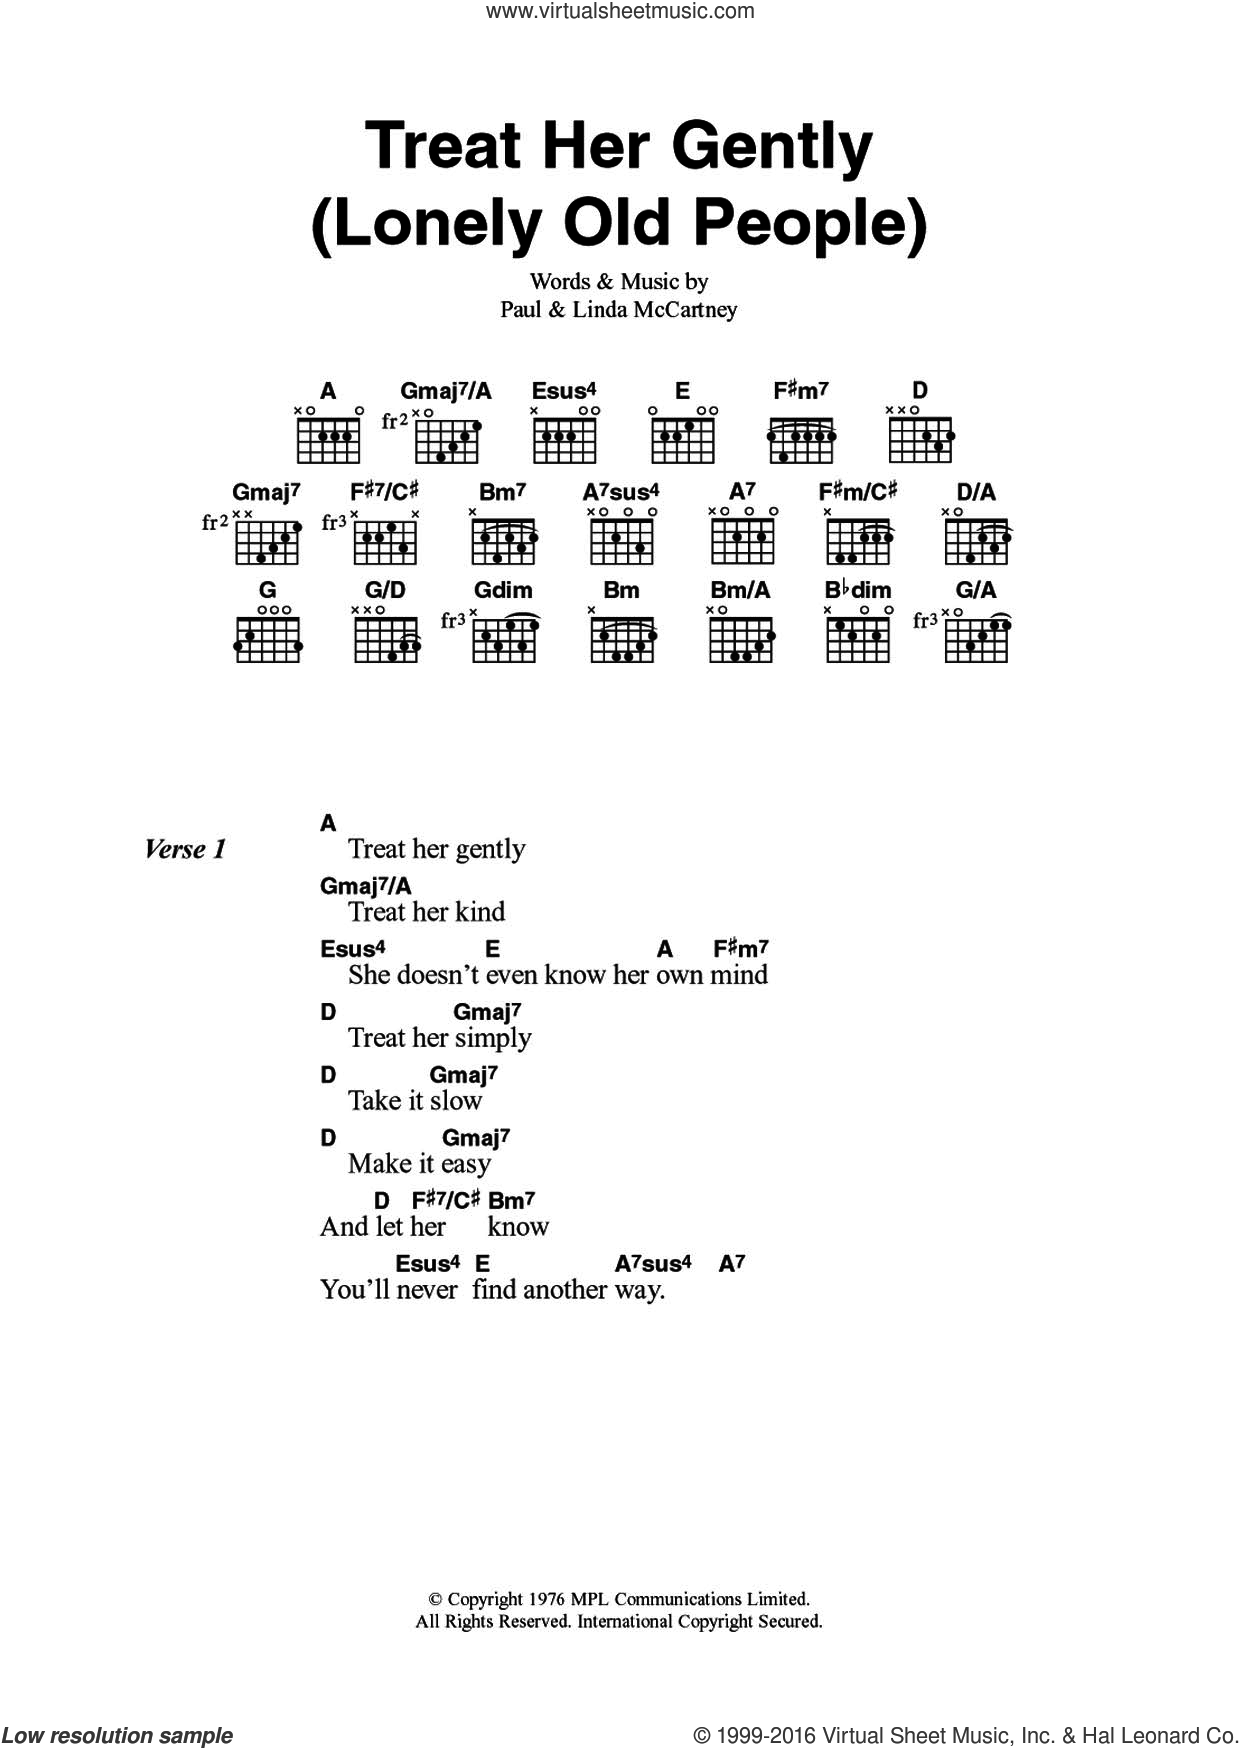 Treat Her Gently (Lonely Old People) sheet music for guitar (chords) by Wings